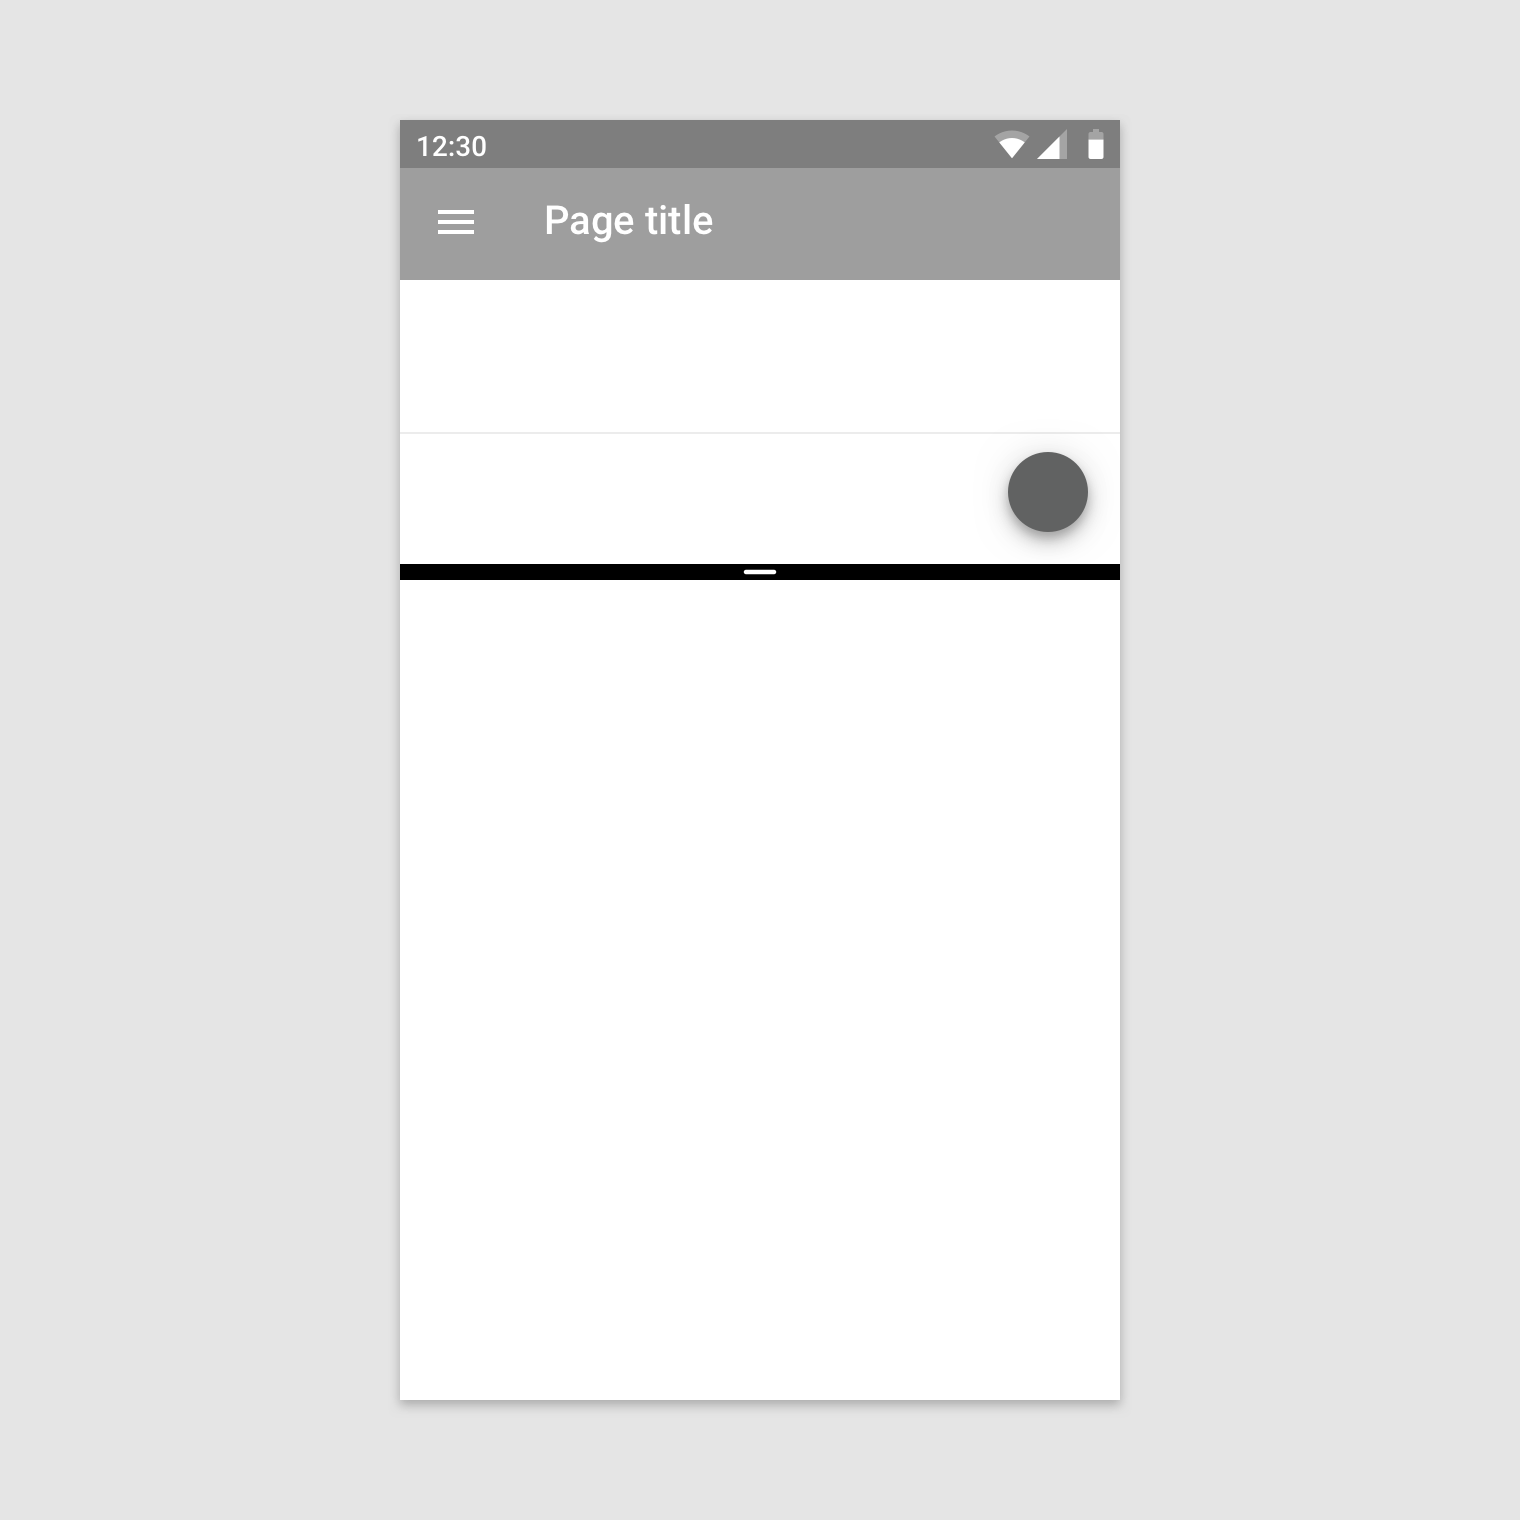 Android split-screen - Material Design